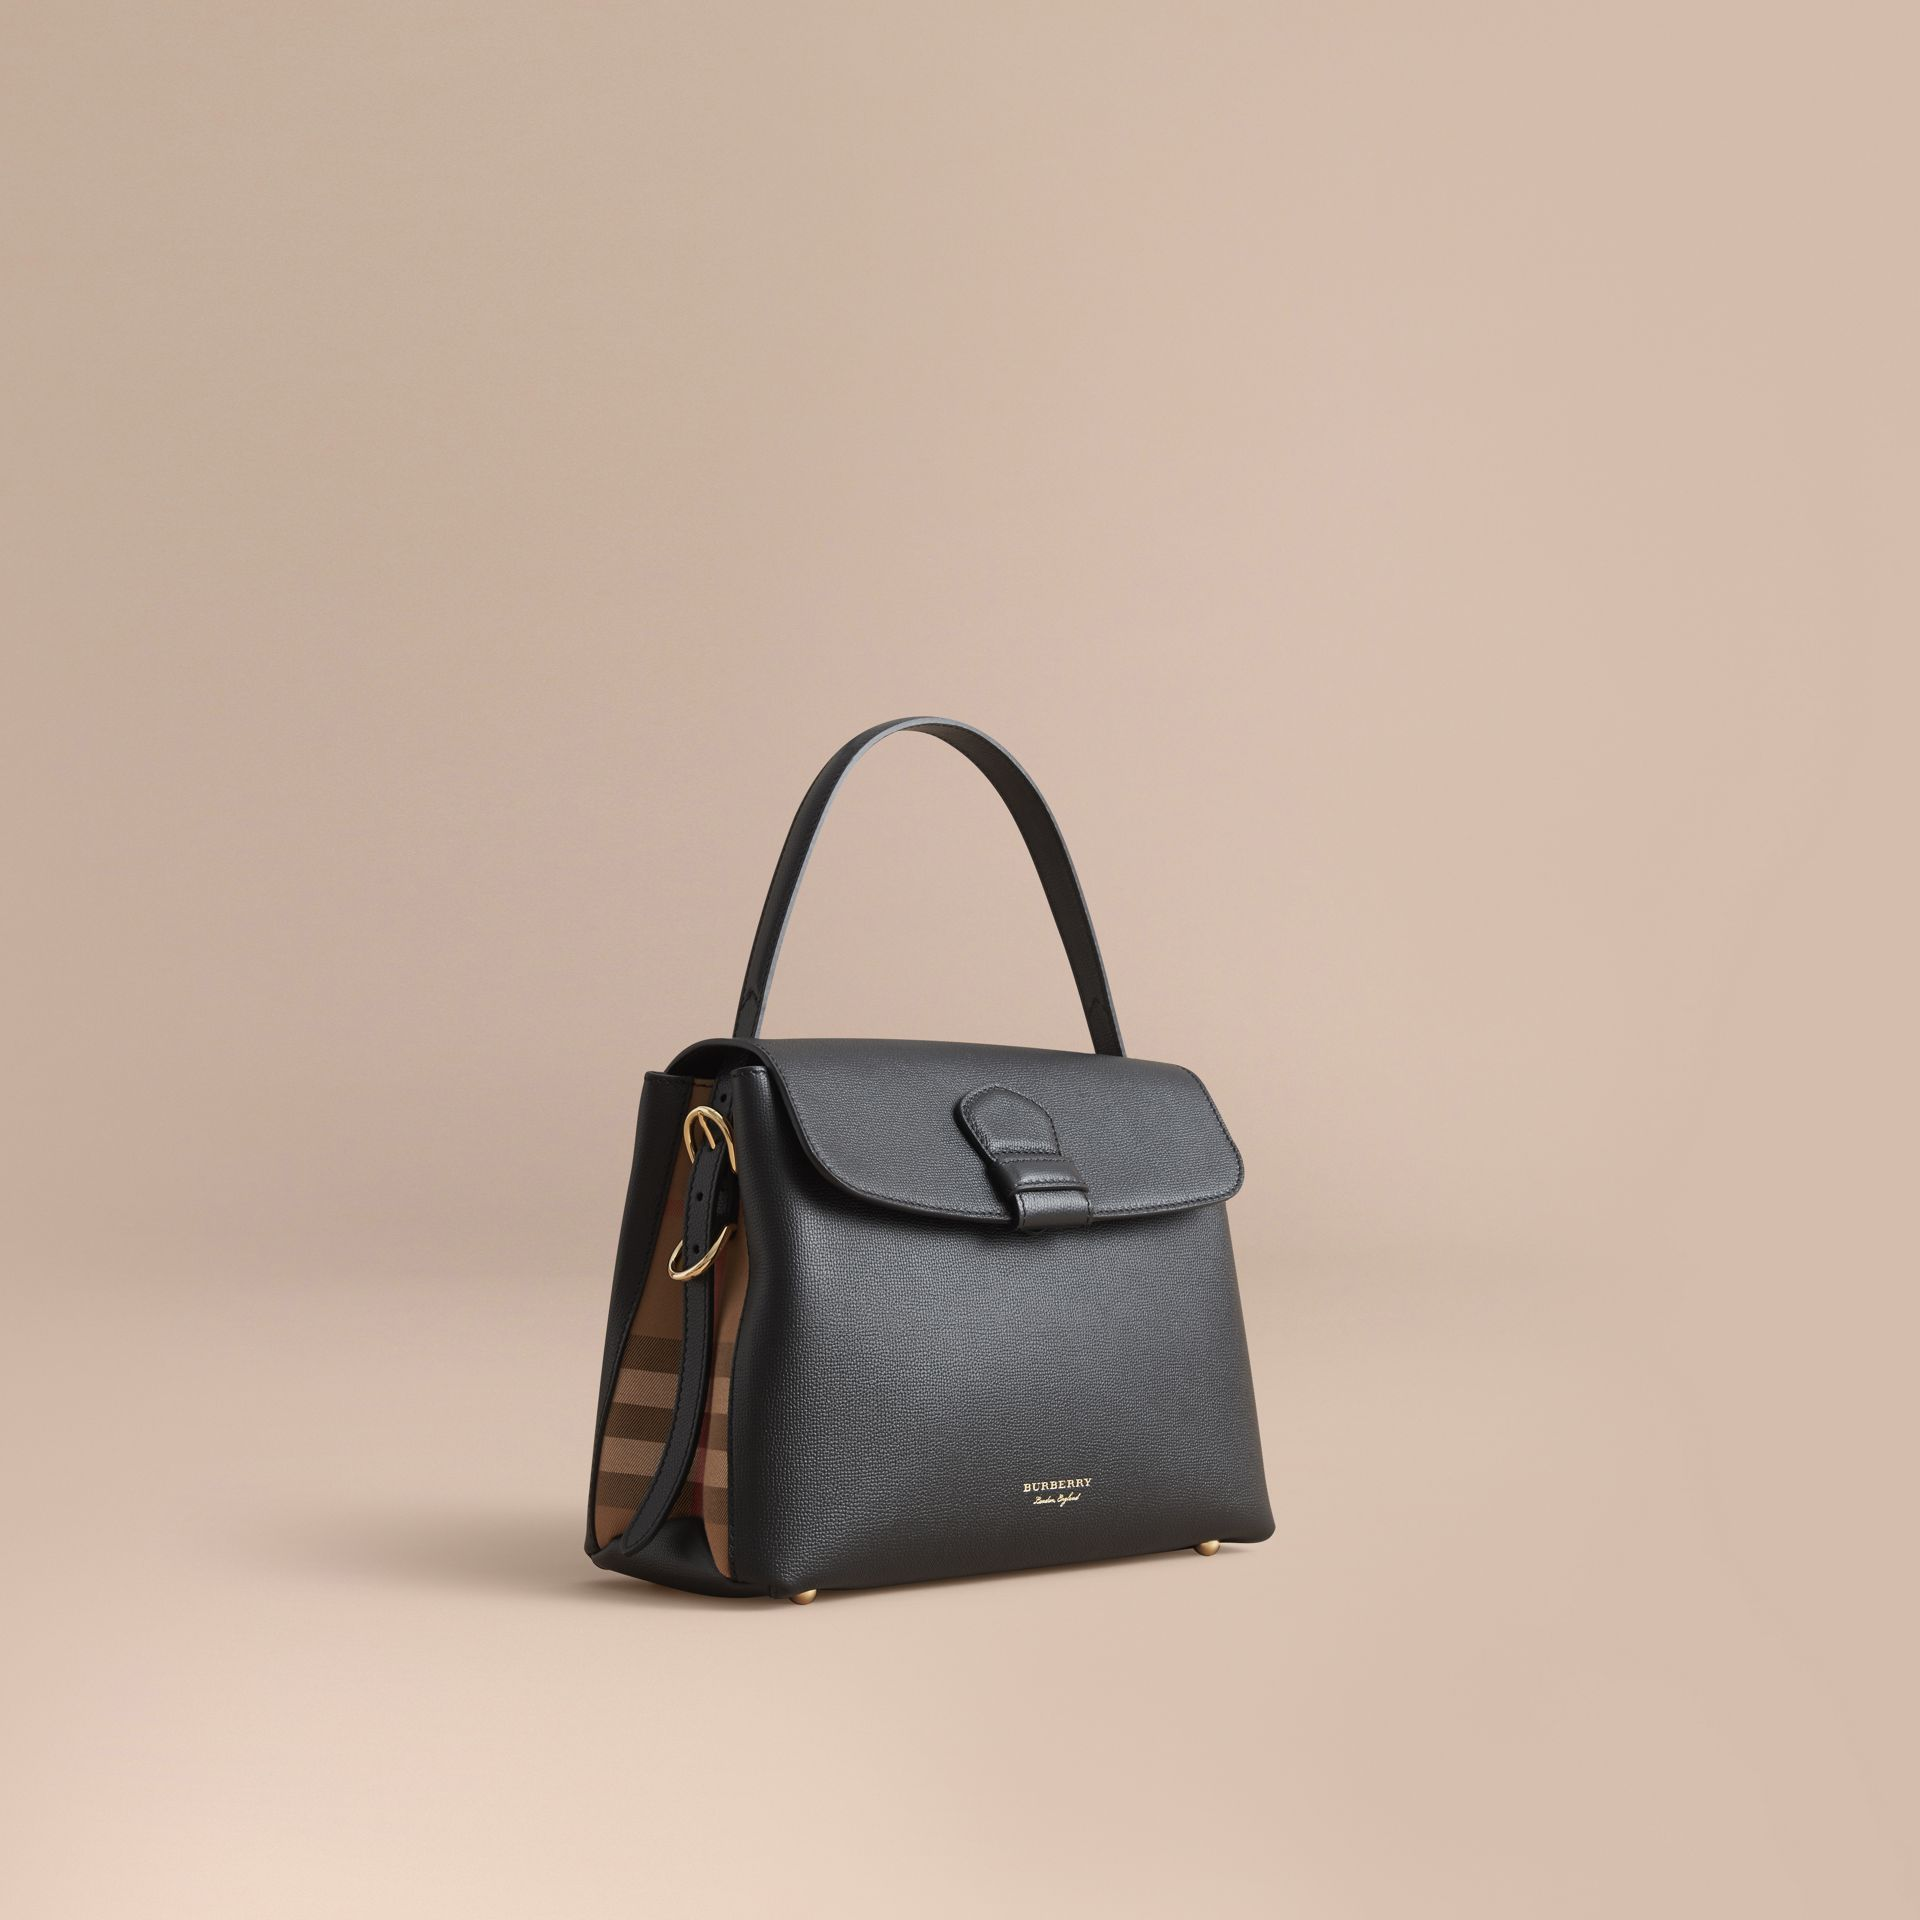 Medium Grainy Leather and House Check Tote Bag Black - gallery image 1